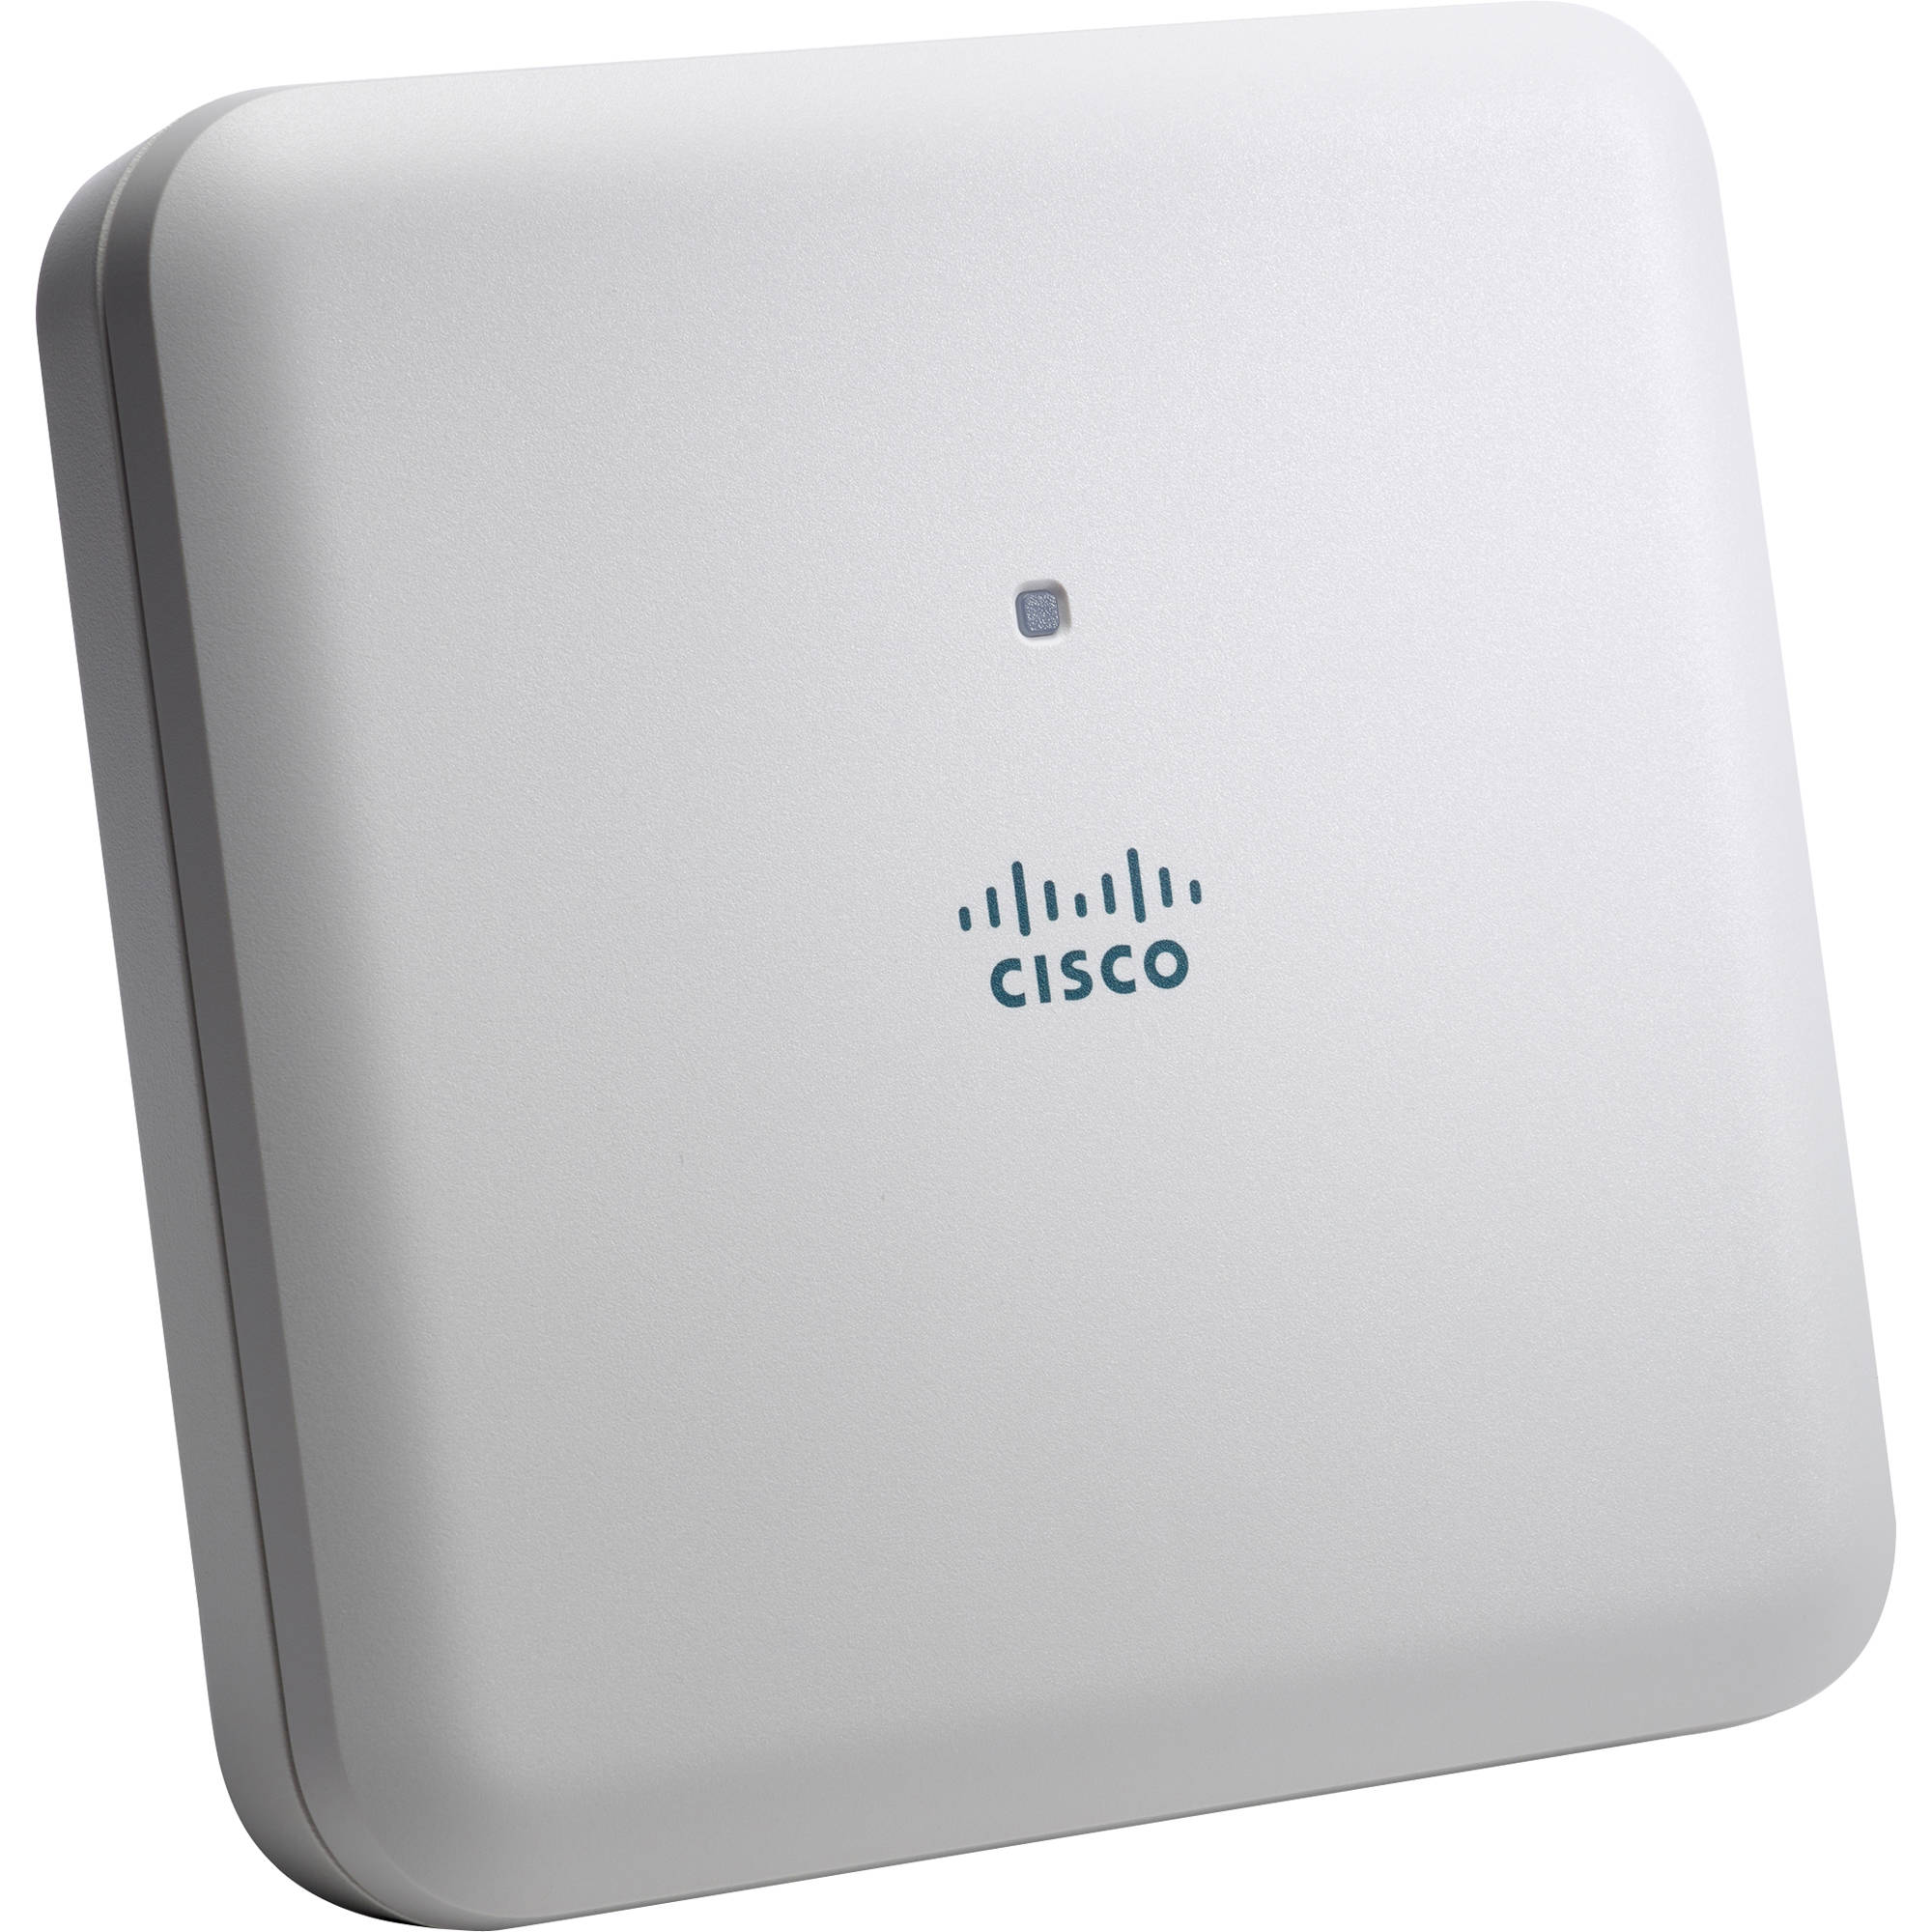 Aironet 1832i Dual-Band Access Point with Cisco Mobility Express Software